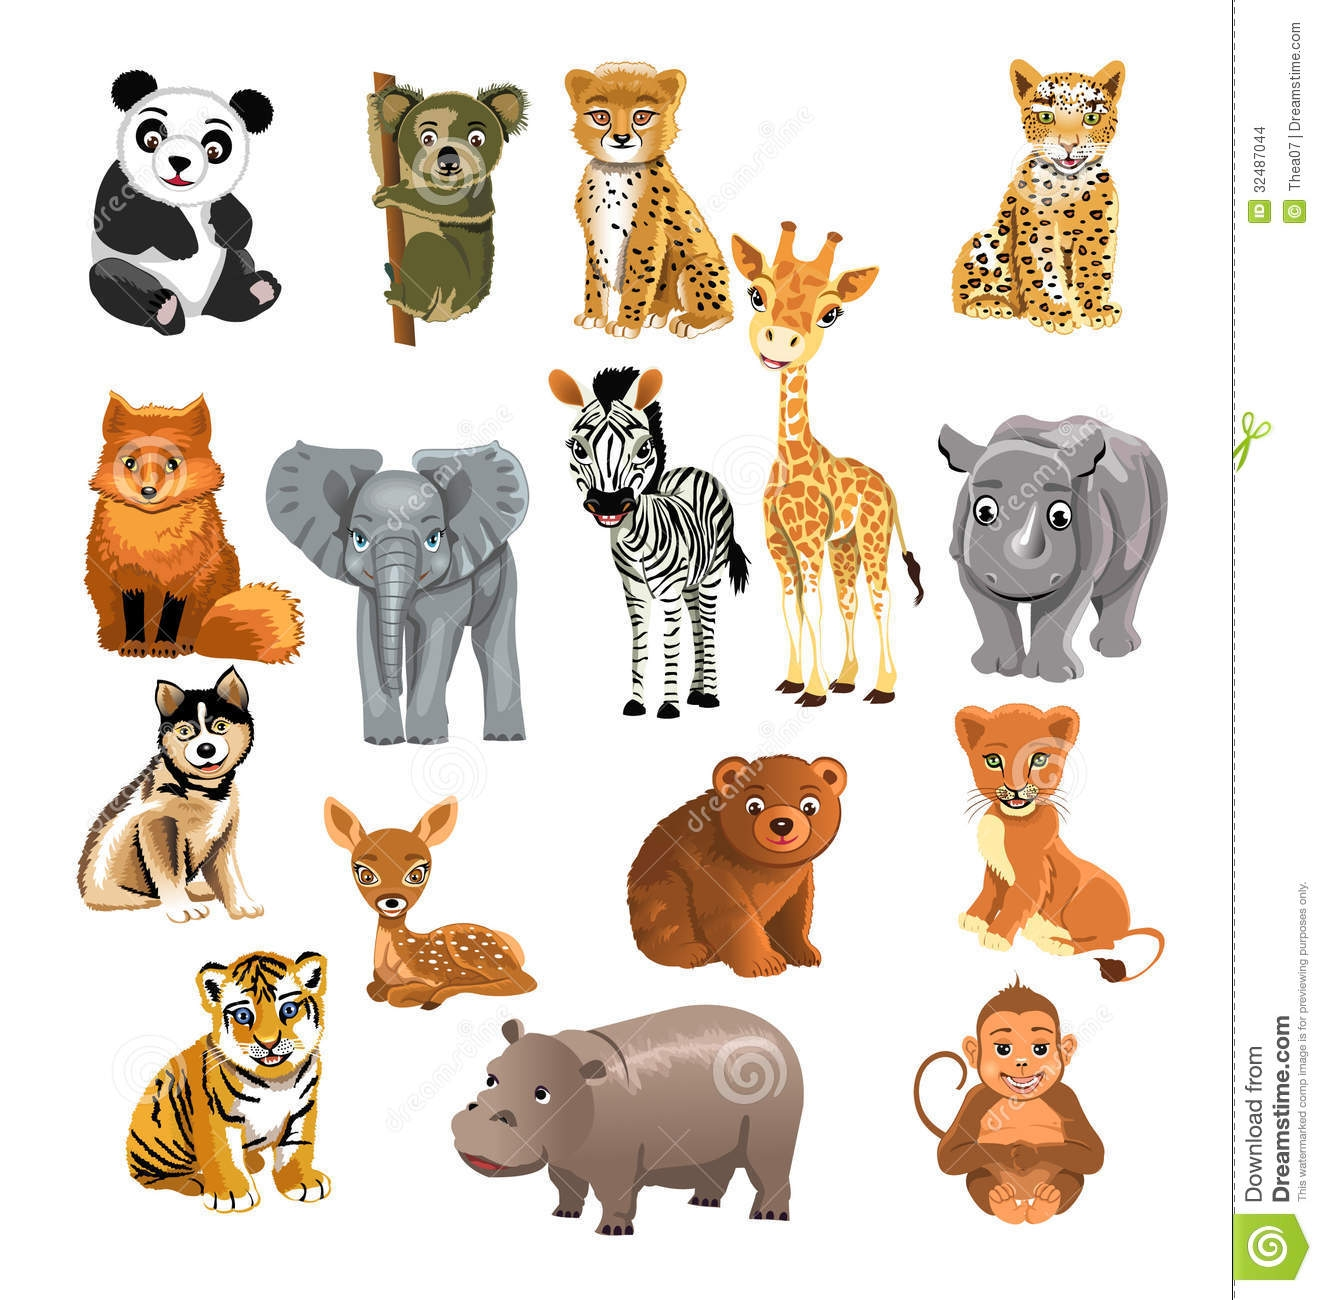 Wild animals clipart images image royalty free download Wild animals clipart 10 » Clipart Station image royalty free download